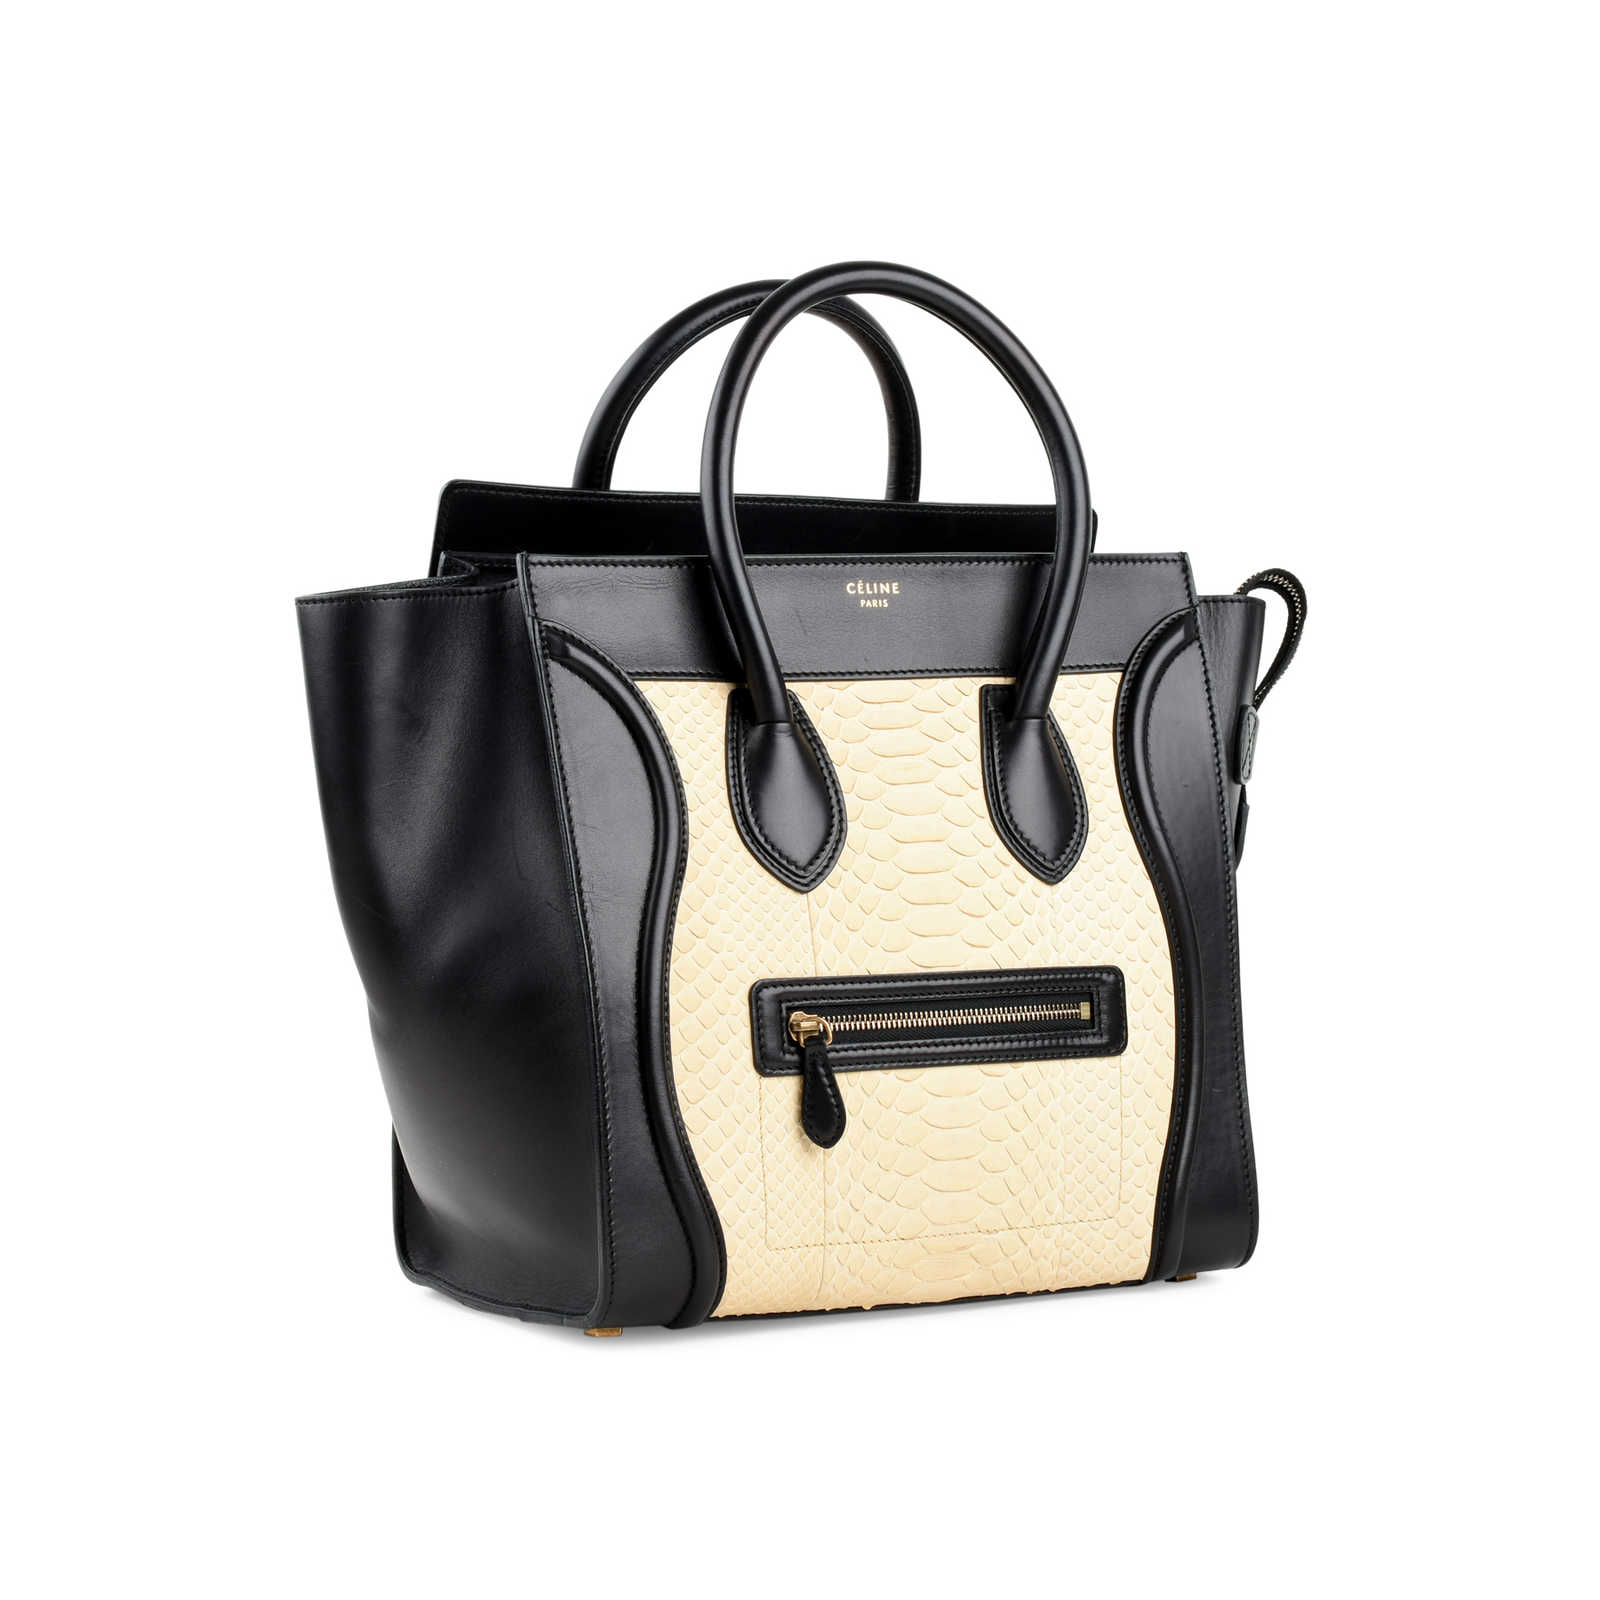 028c73a984 ... Authentic Second Hand Céline Python Mini Luggage Tote (PSS-470-00004)  ...